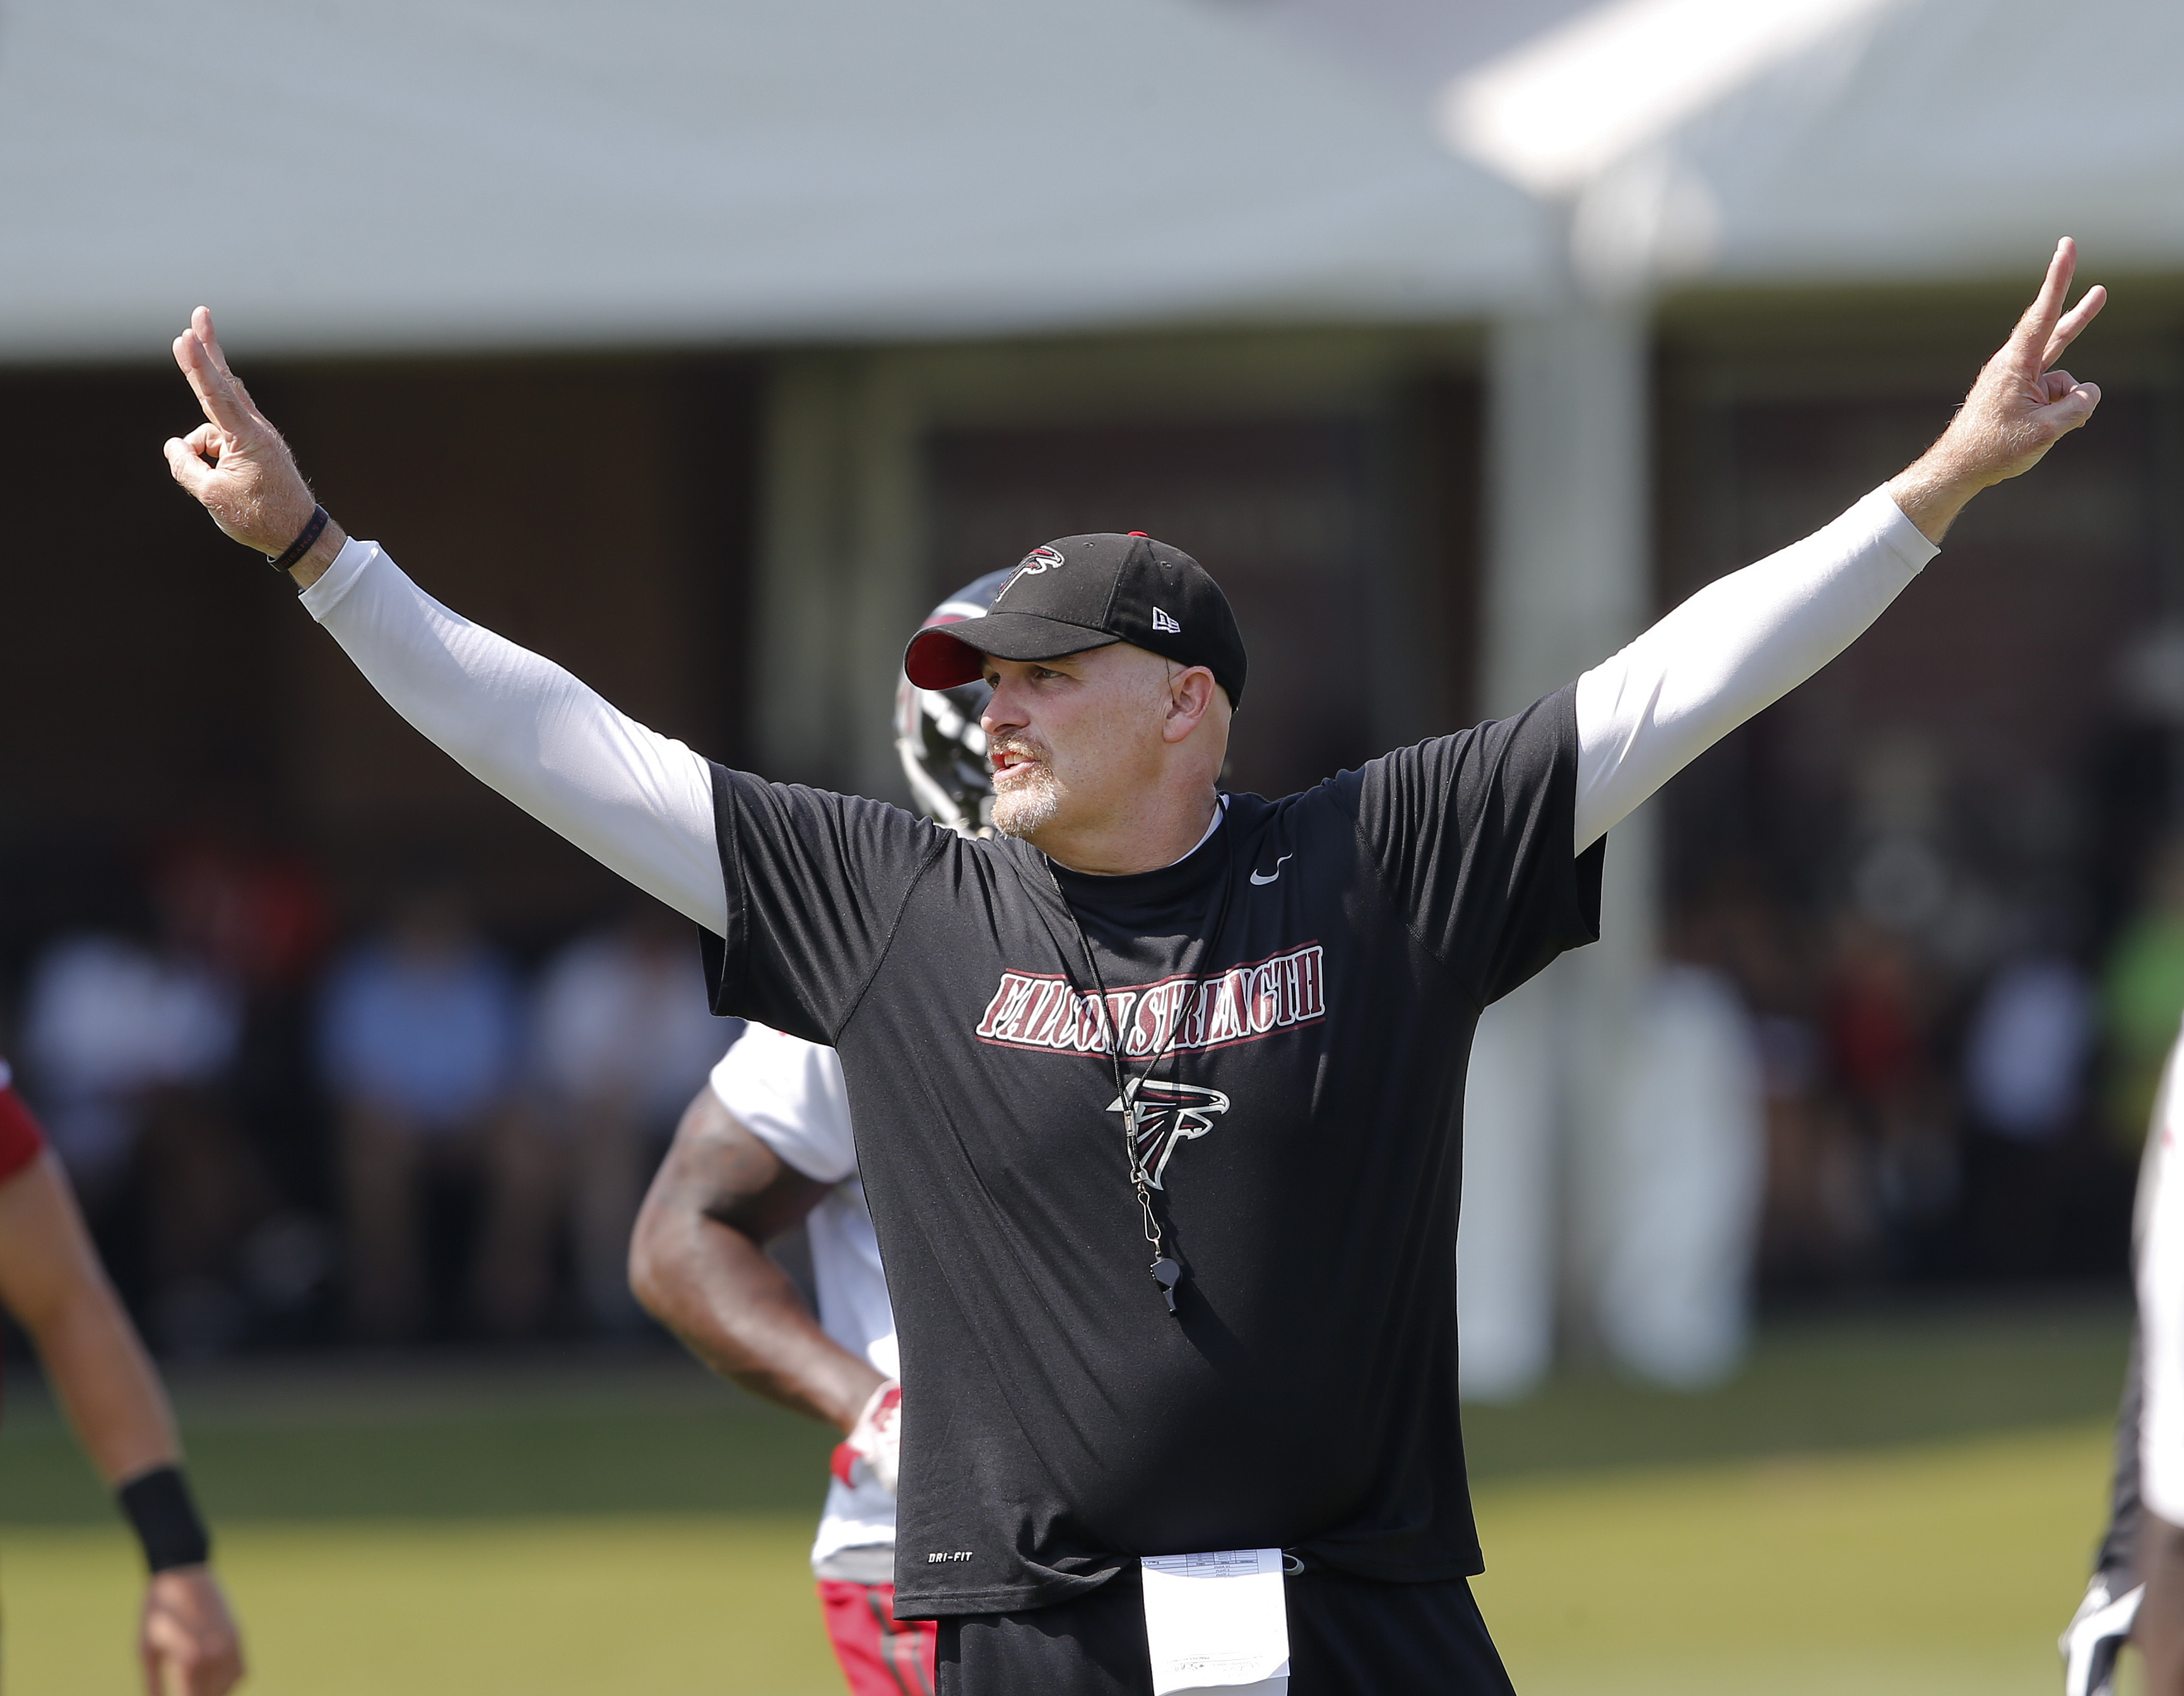 Atlanta Falcons head coach Dan Quinn directs his players during an NFL football training camp  Friday, July 31, 2015, in Flowery Branch, Ga. (AP Photo/John Bazemore)